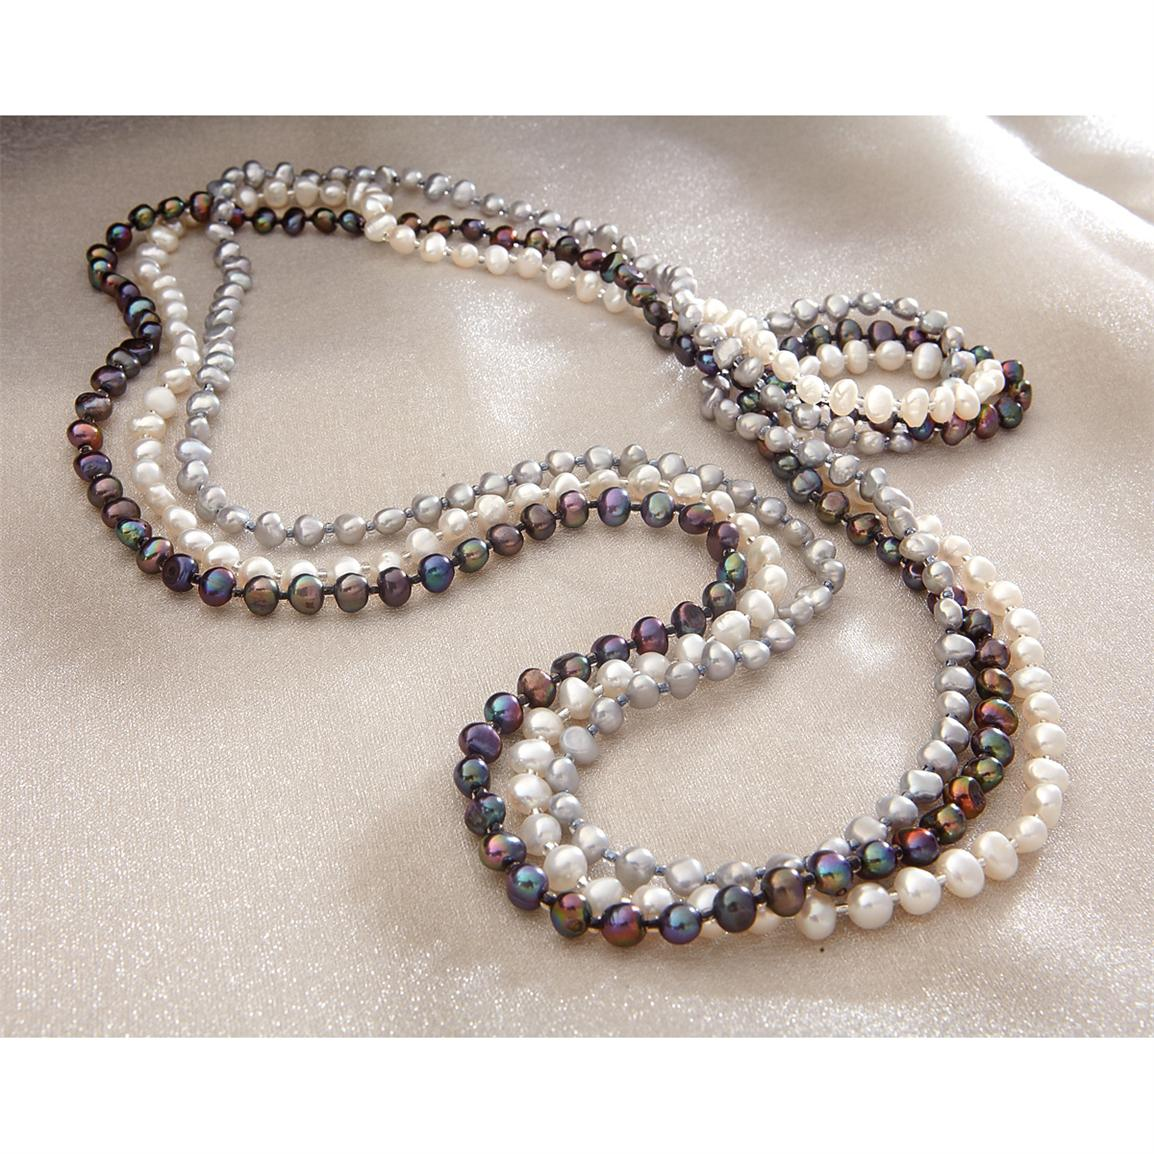 3-Pc. 32 inch long Freshwater Pearl Necklace Set